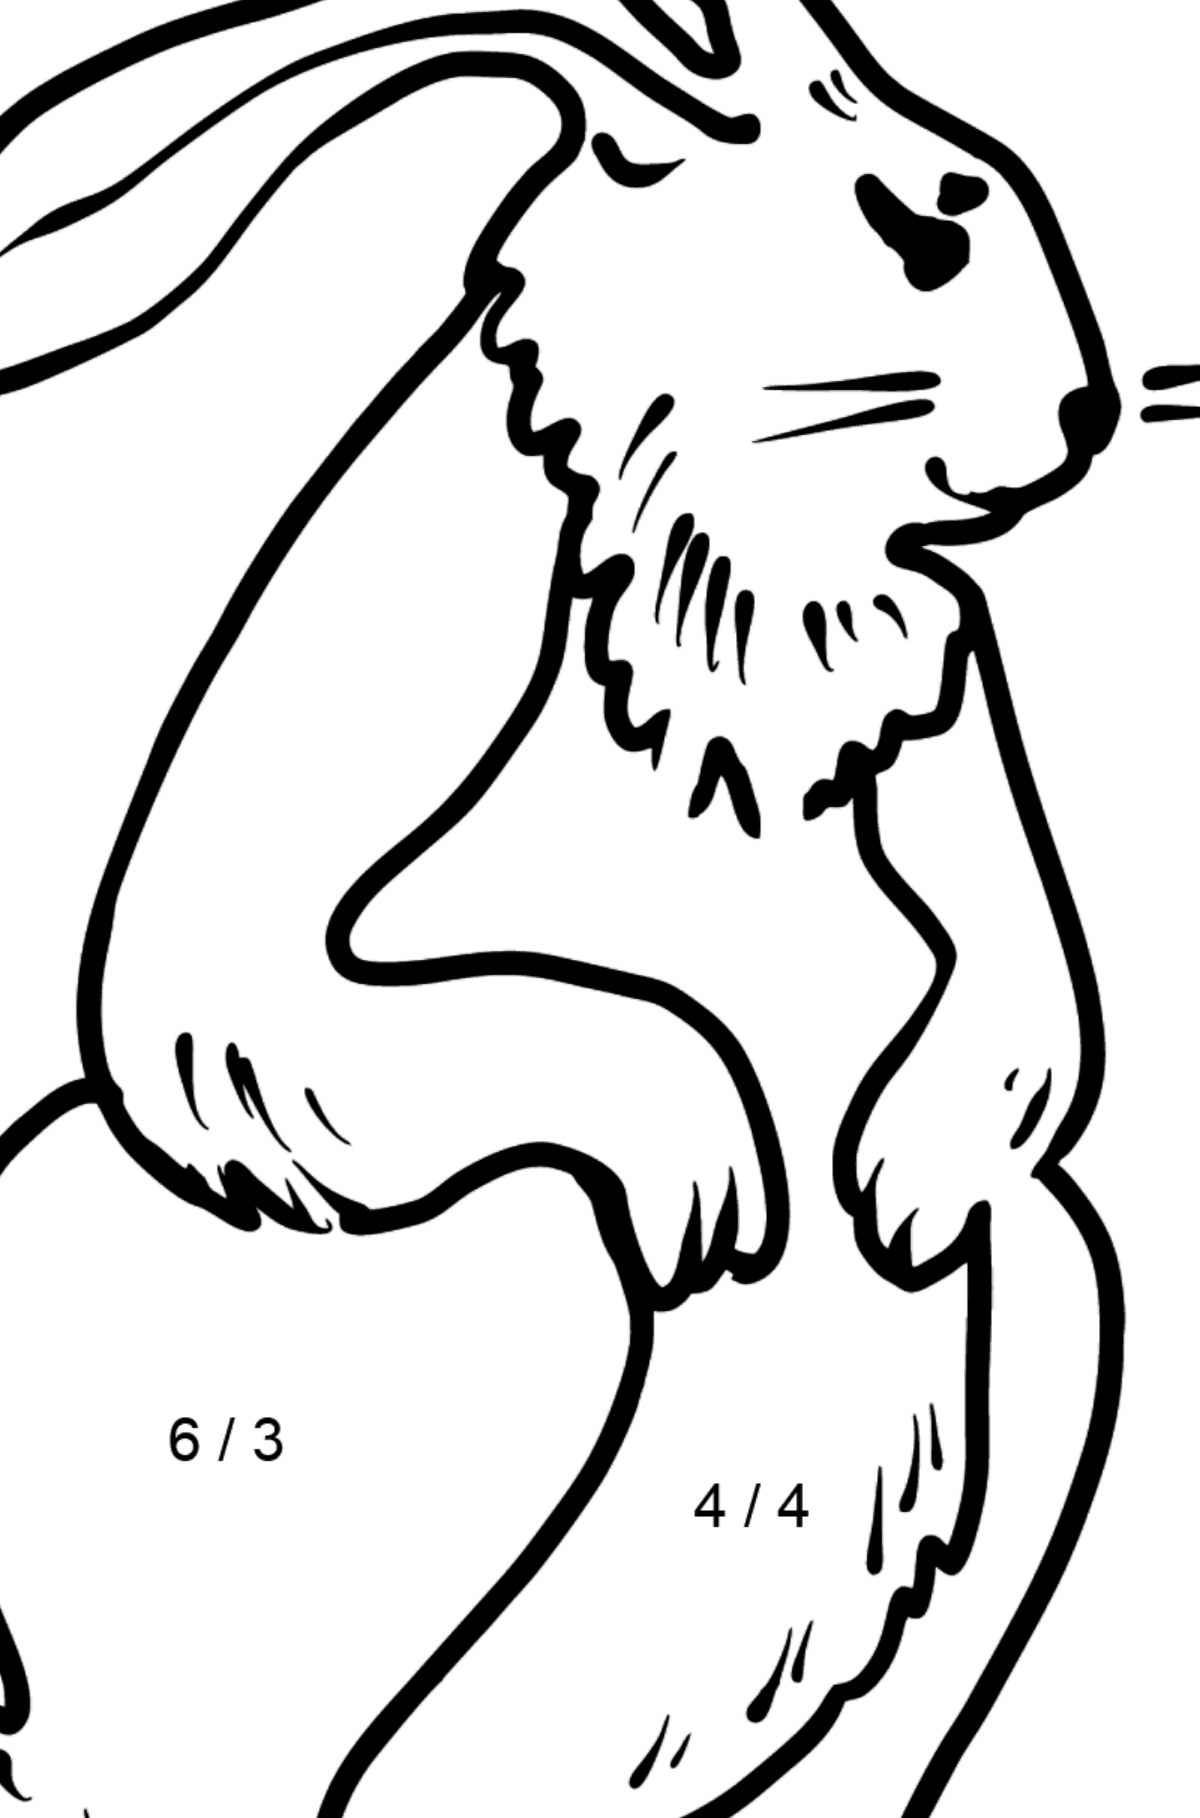 Rabbit coloring page - Math Coloring - Division for Kids